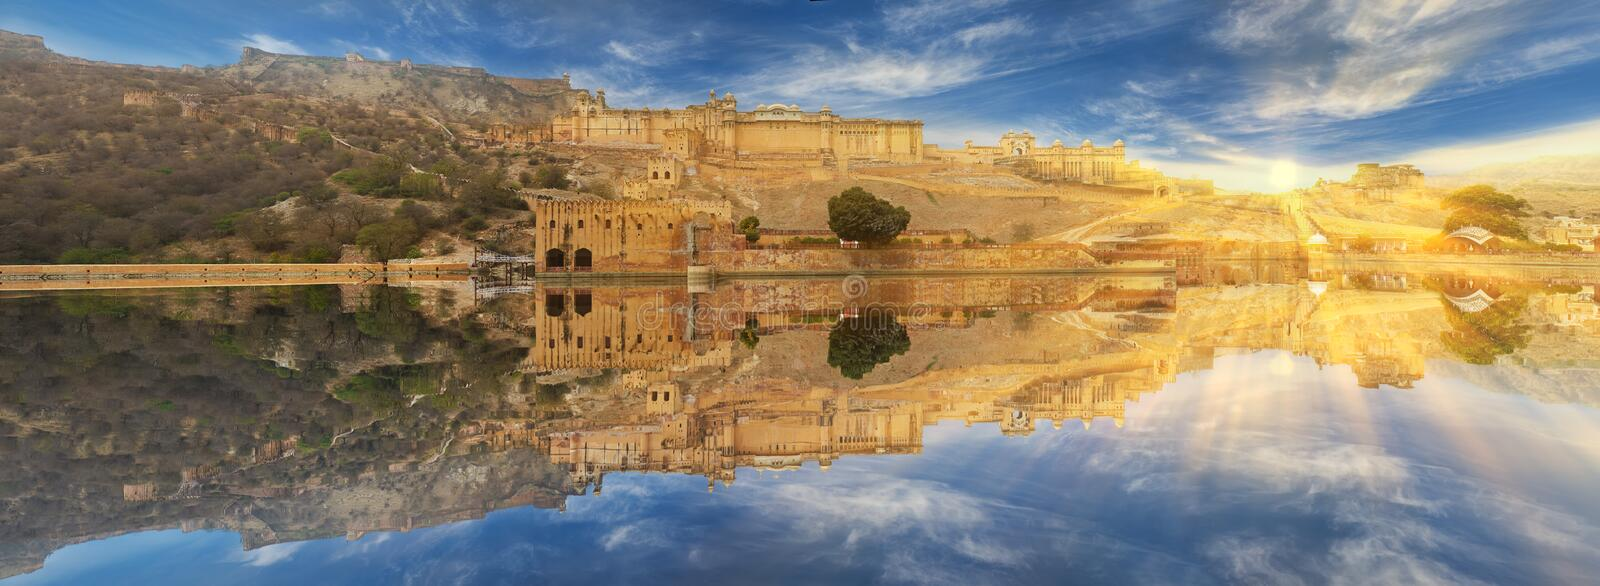 Amer Fort is located in Amer, Rajasthan, India. Amer Fort is located in Amer, a town with an area of 4 sq. kilometres, not far from Jaipur, Rajasthan state royalty free stock image